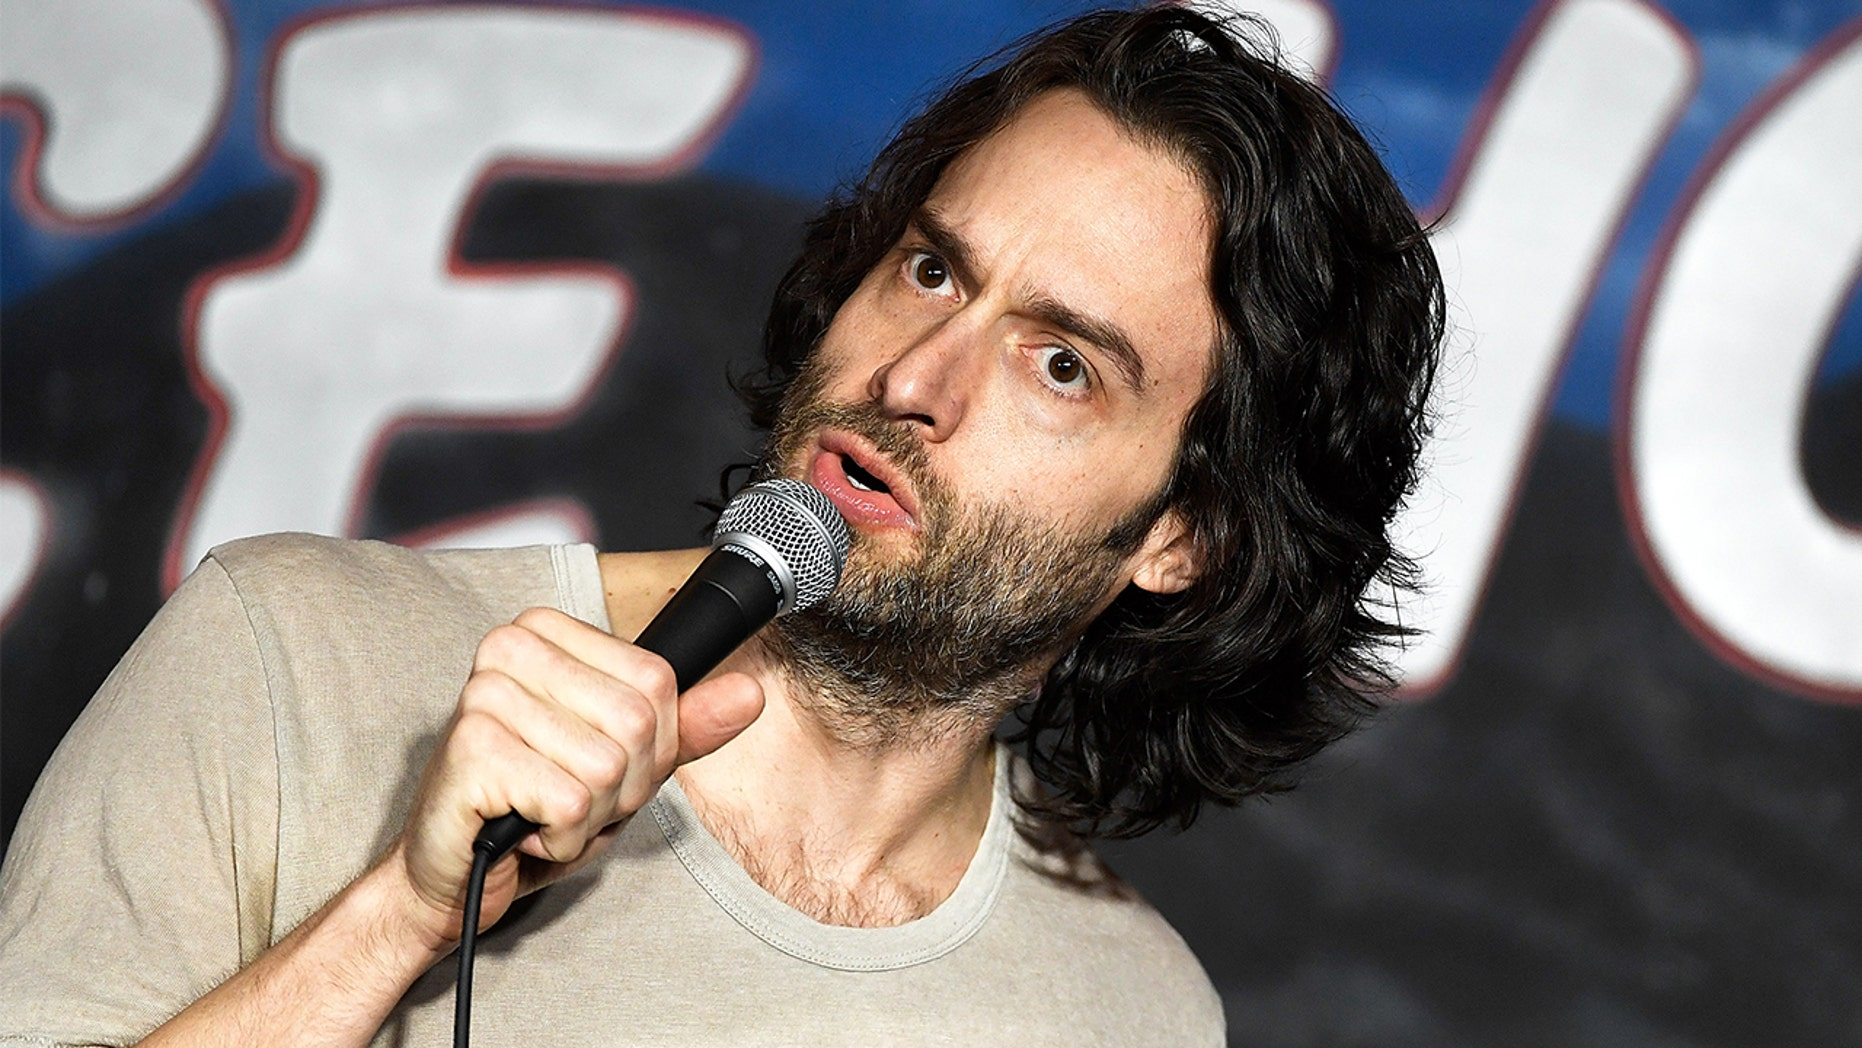 Comedian Chris D'Elia addresses sexual misconduct allegations months after denial: 'Sex controlled my life'